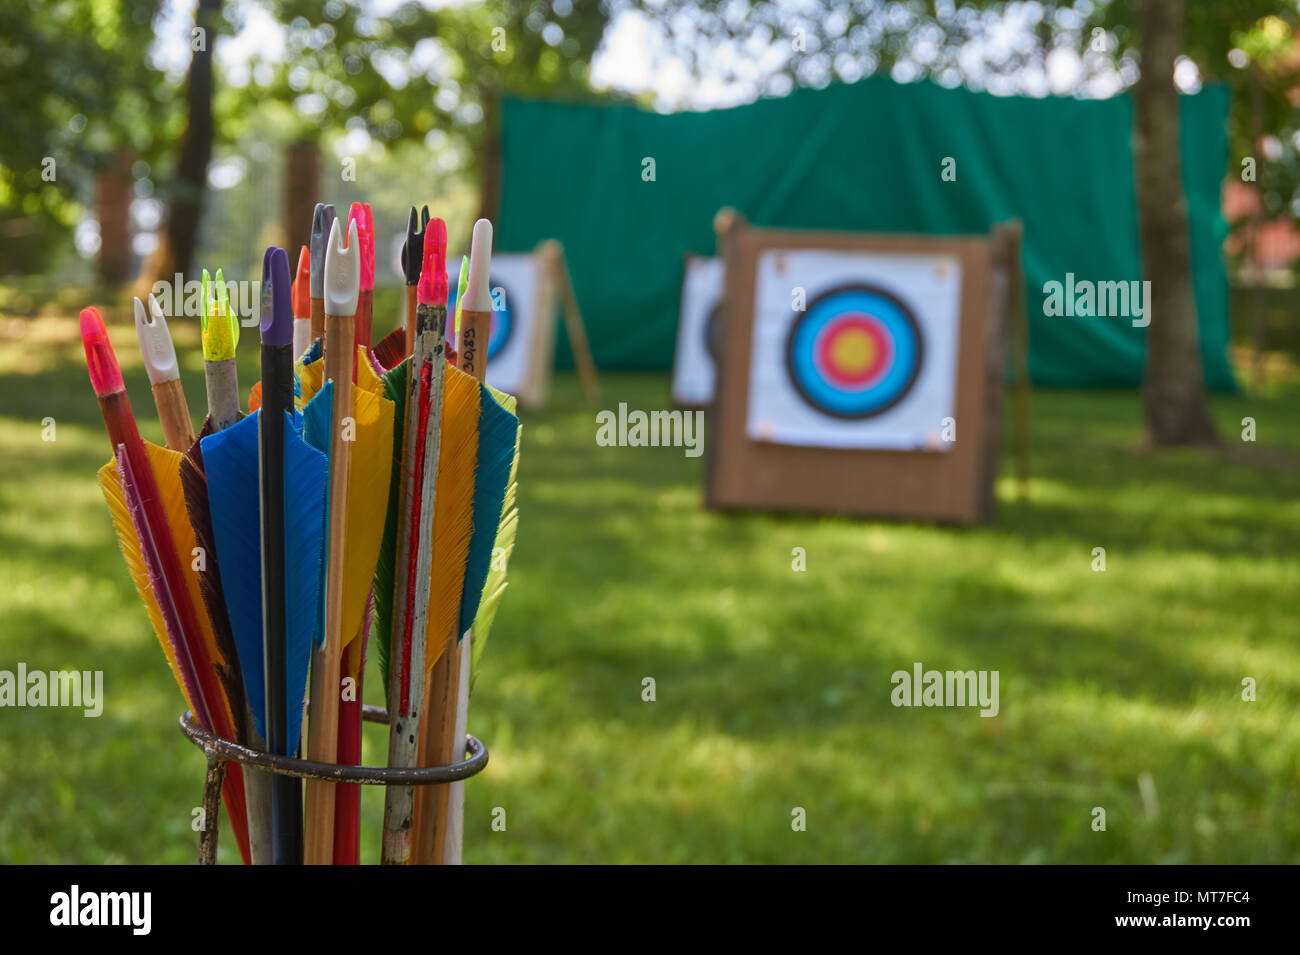 Aim concept with a low angle view across green grass of targets and a arrows in the foreground - Stock Image